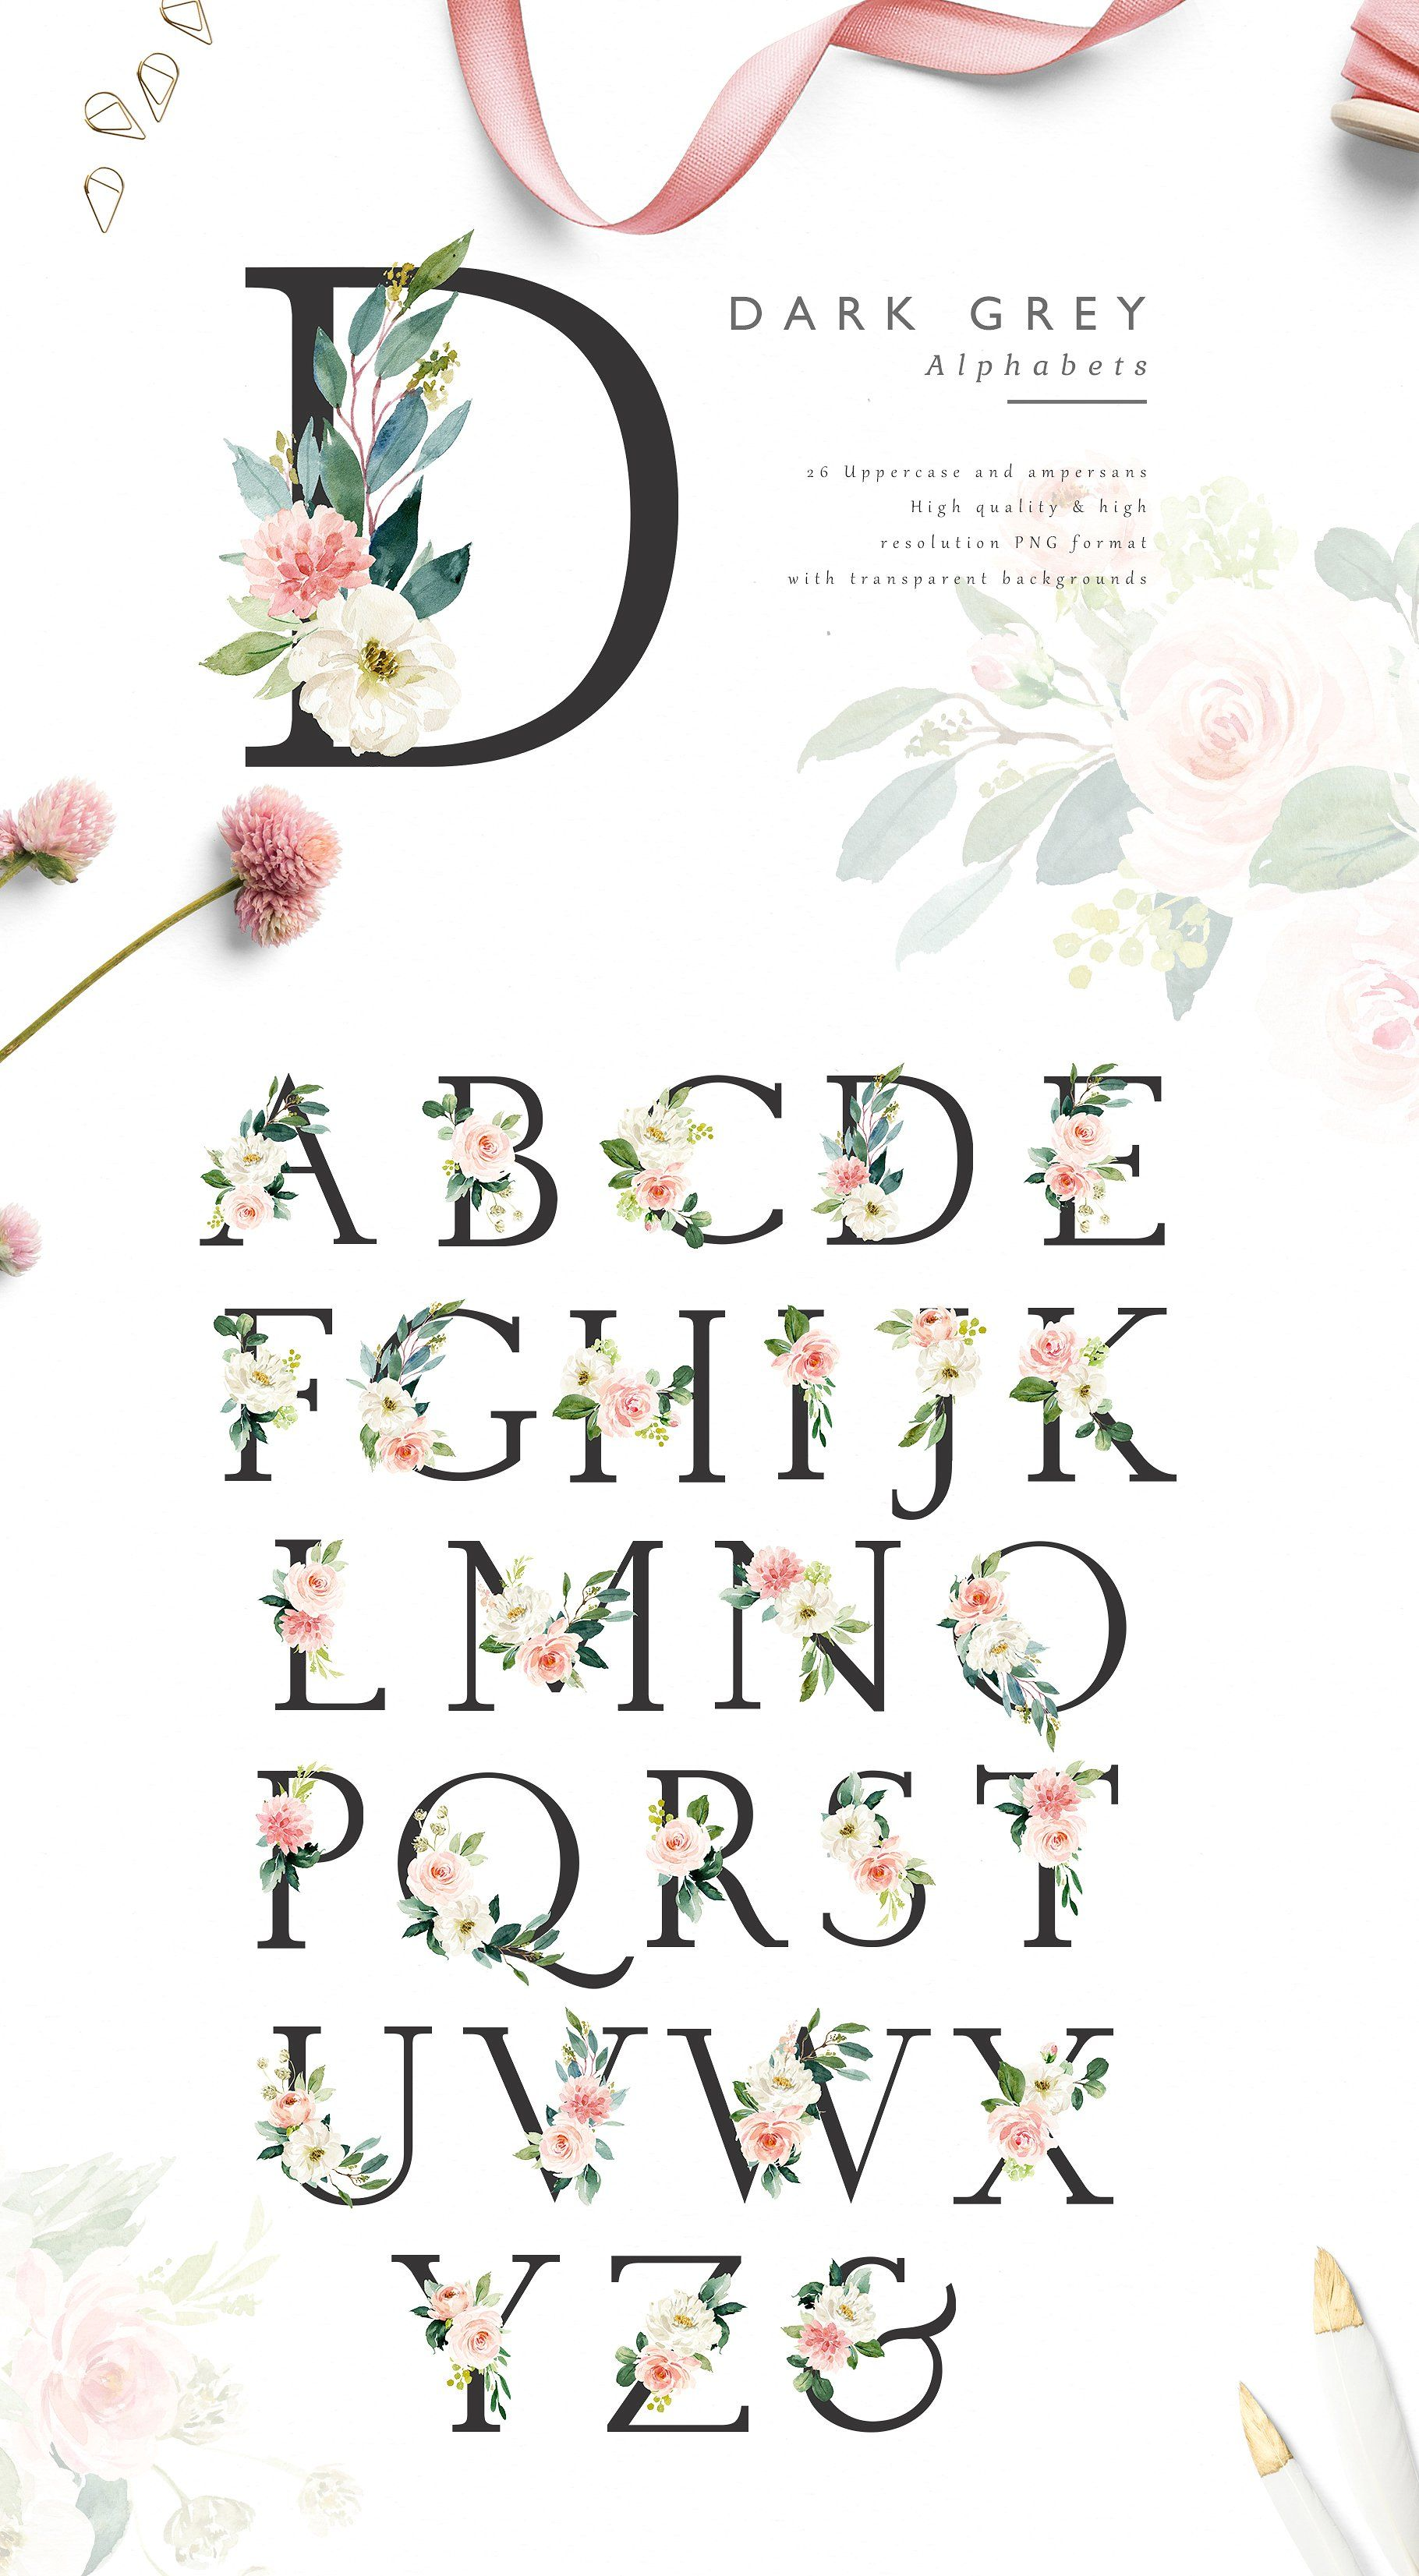 Ethereal Blush-Florals Graphic Set by Graphic Box on @creativemarket #illustrationart